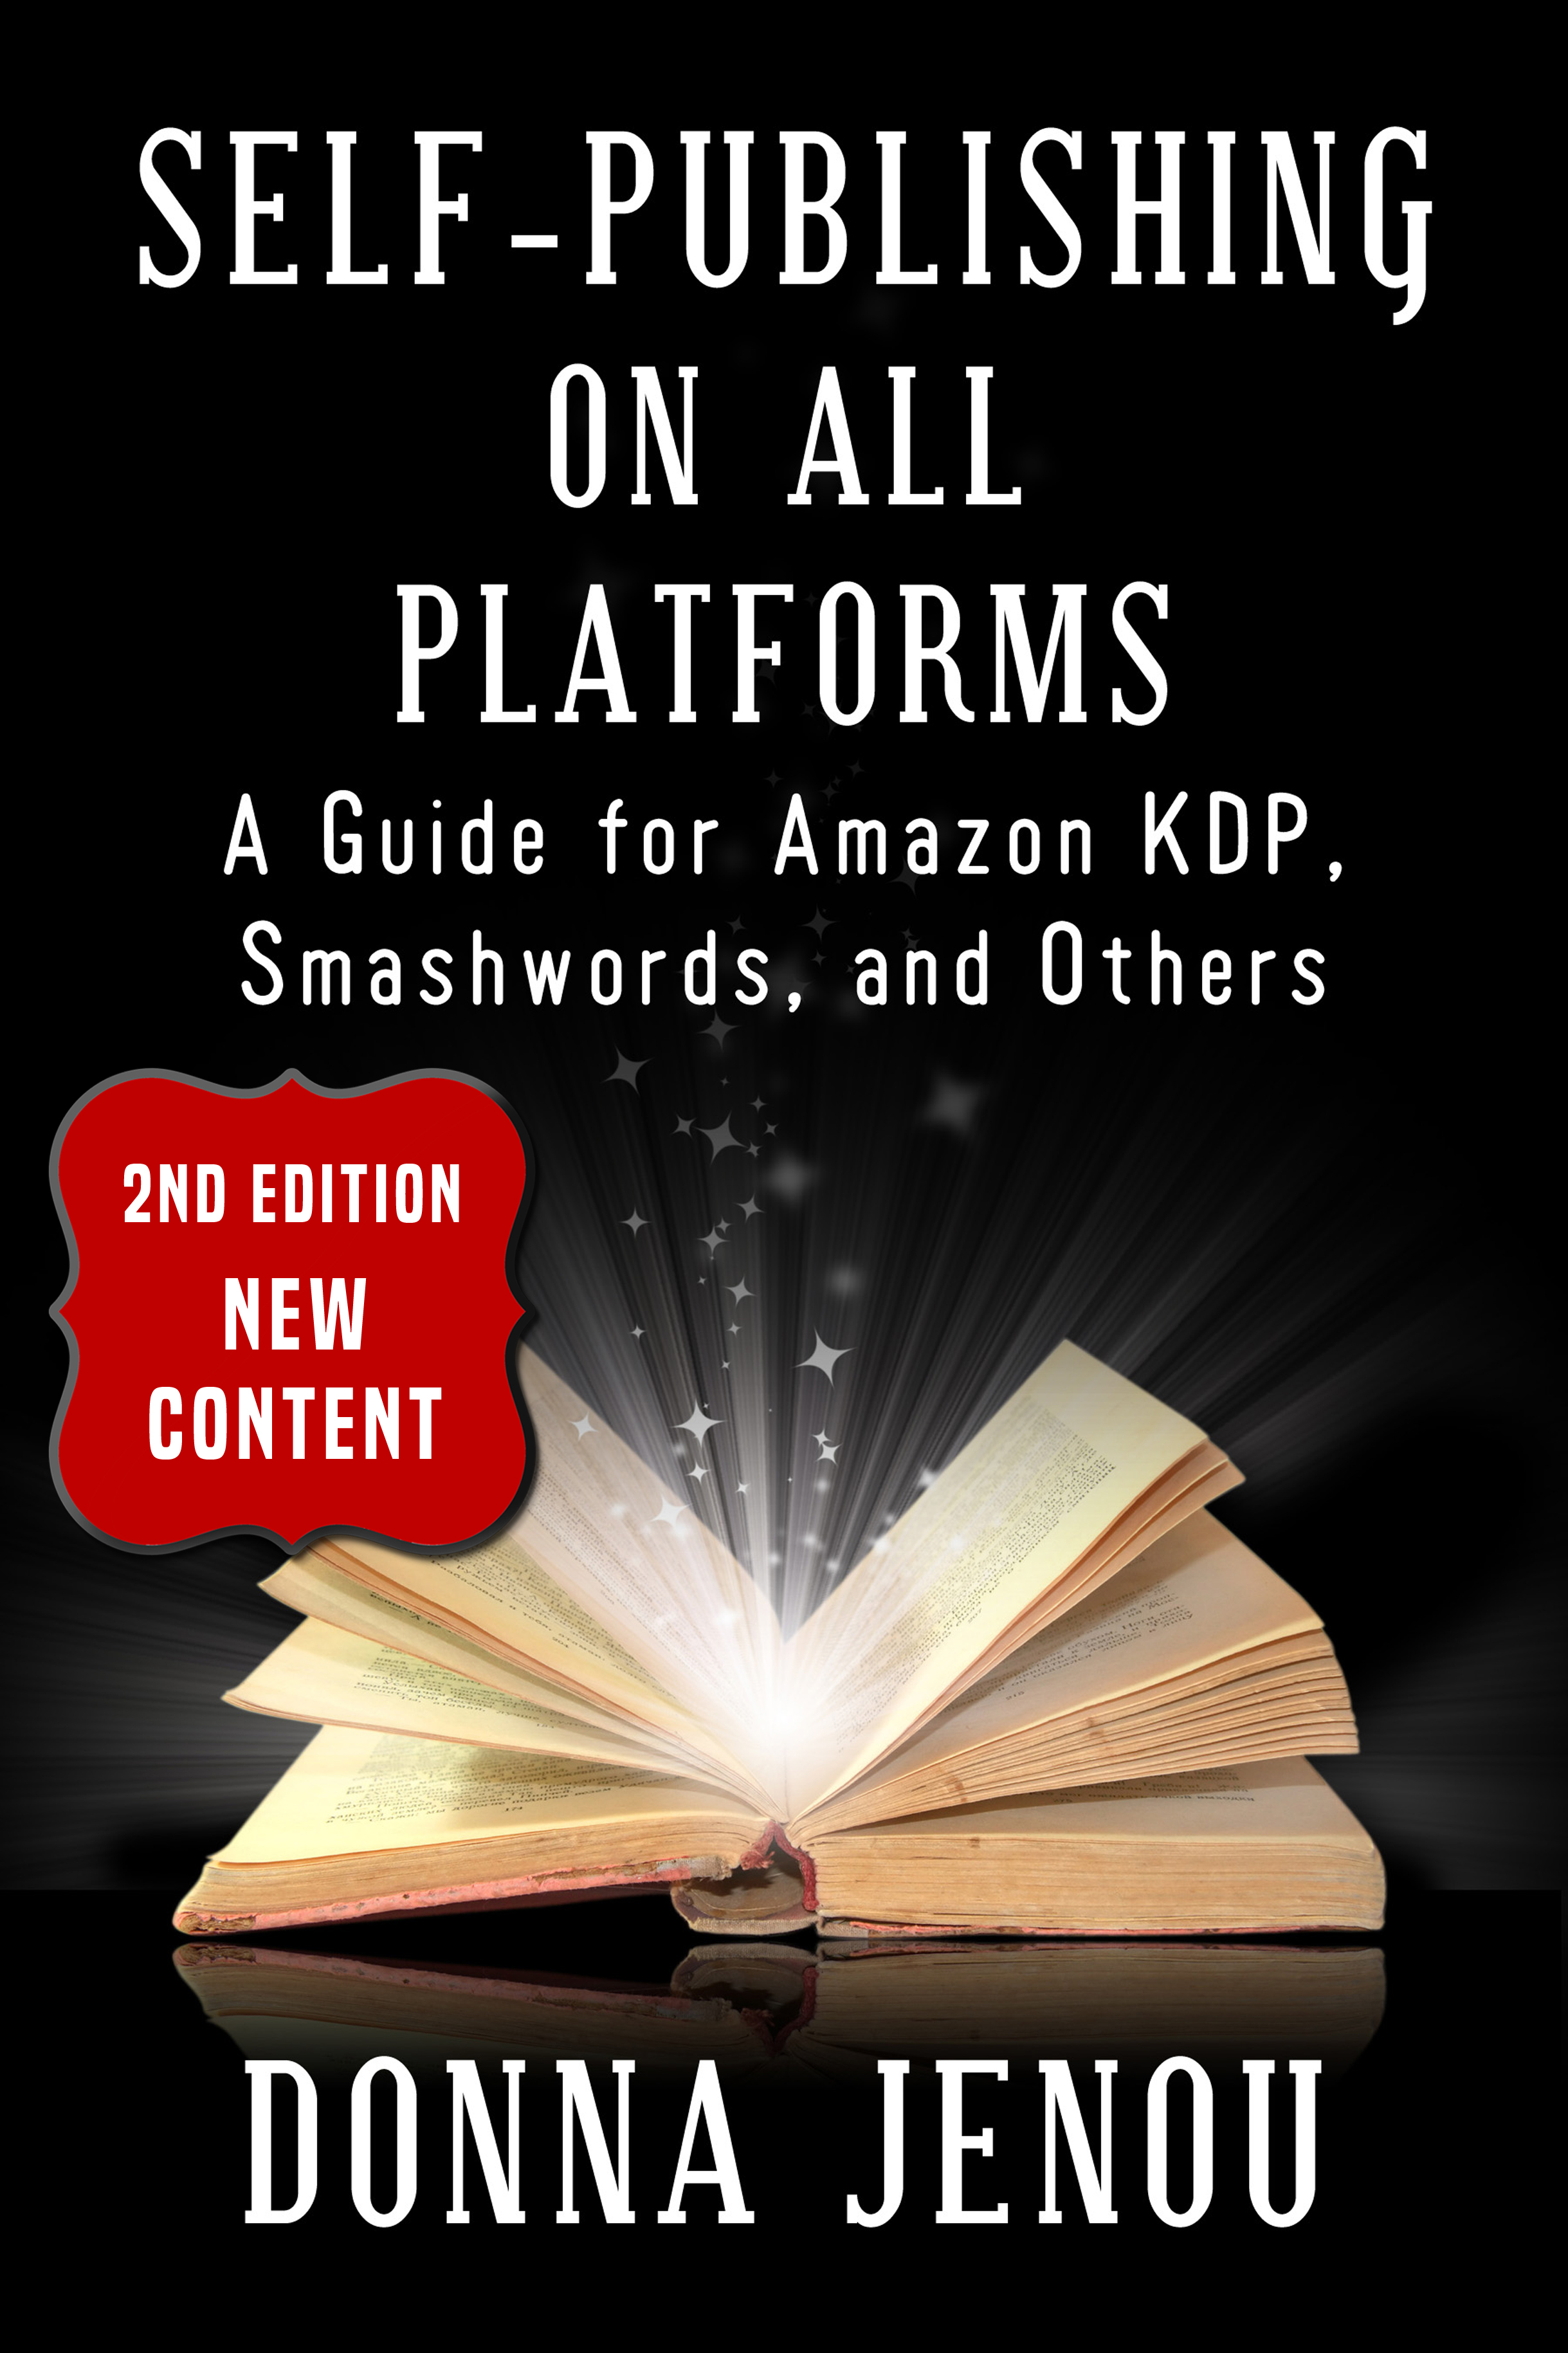 Self-Publishing On All Platforms: A Guide for Amazon KDP, Smashwords, and  Others, an Ebook by Donna Jenou